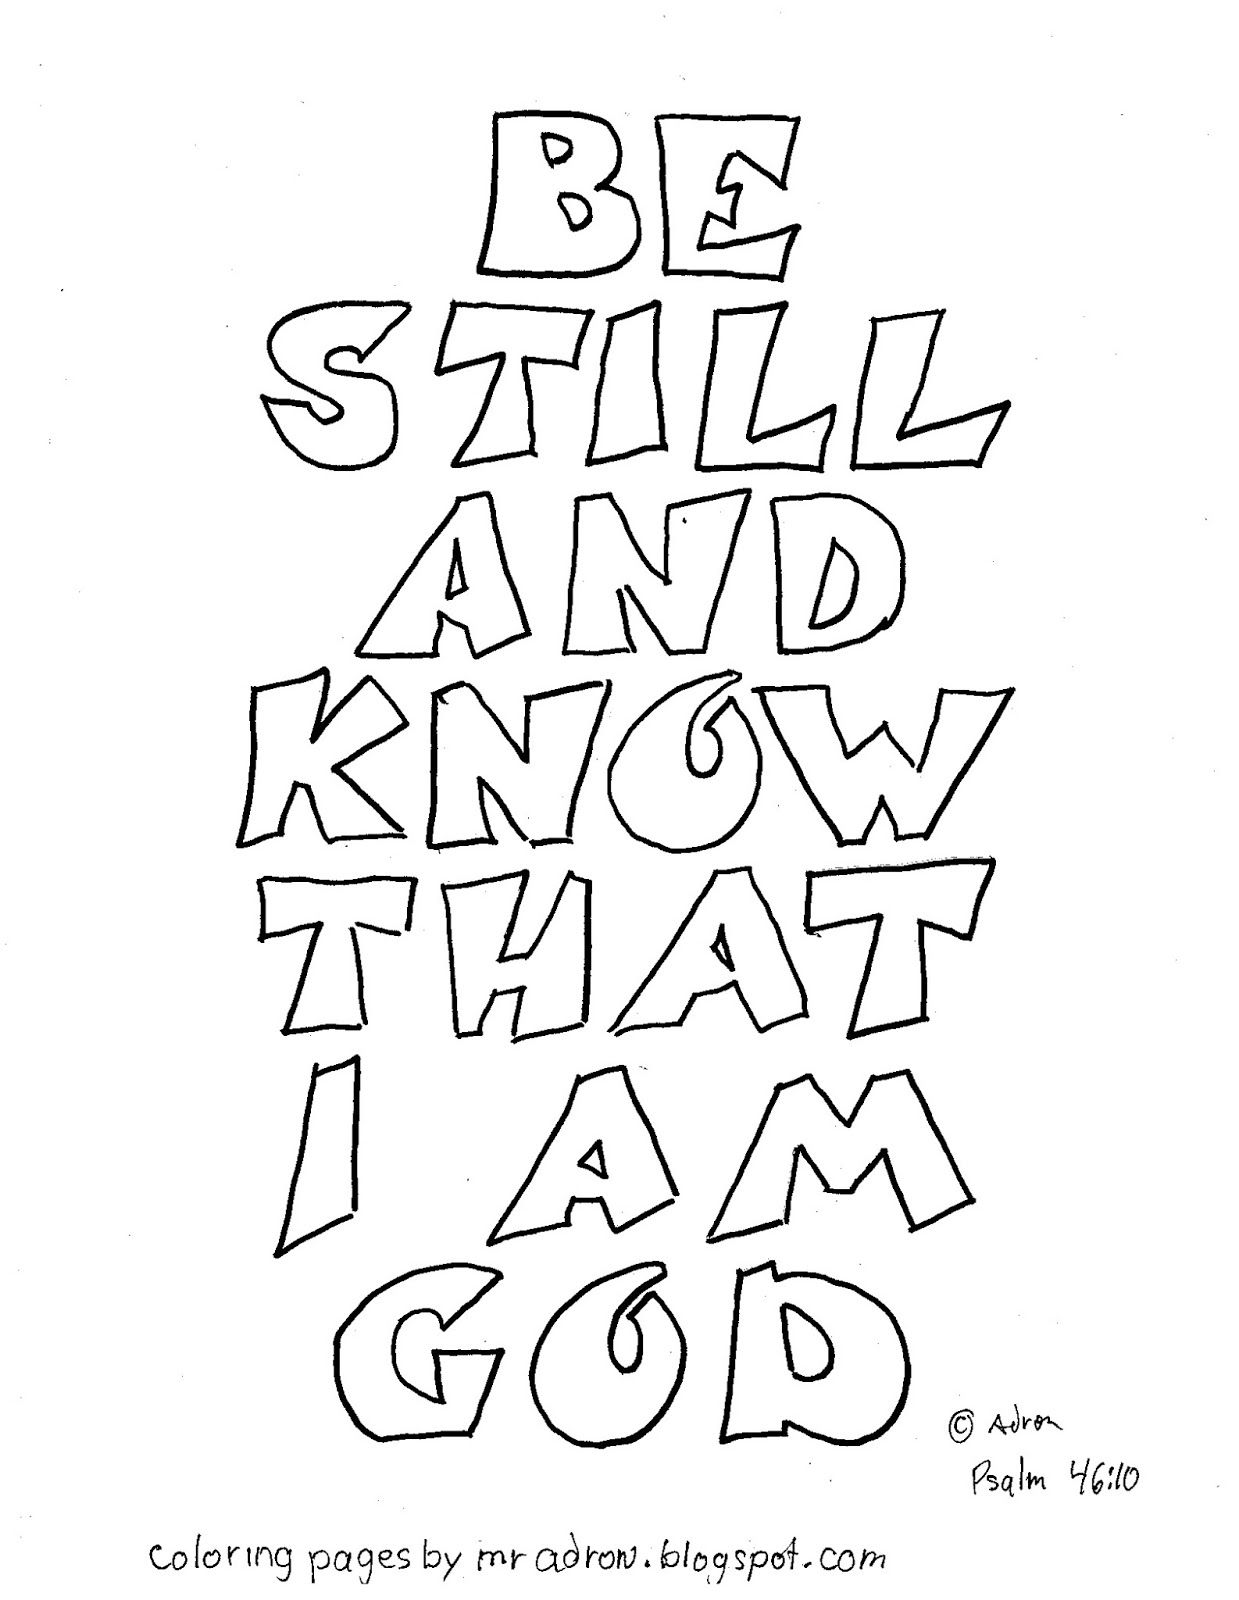 psalms coloring pages psalms coloring pages at getdrawings free download coloring pages psalms